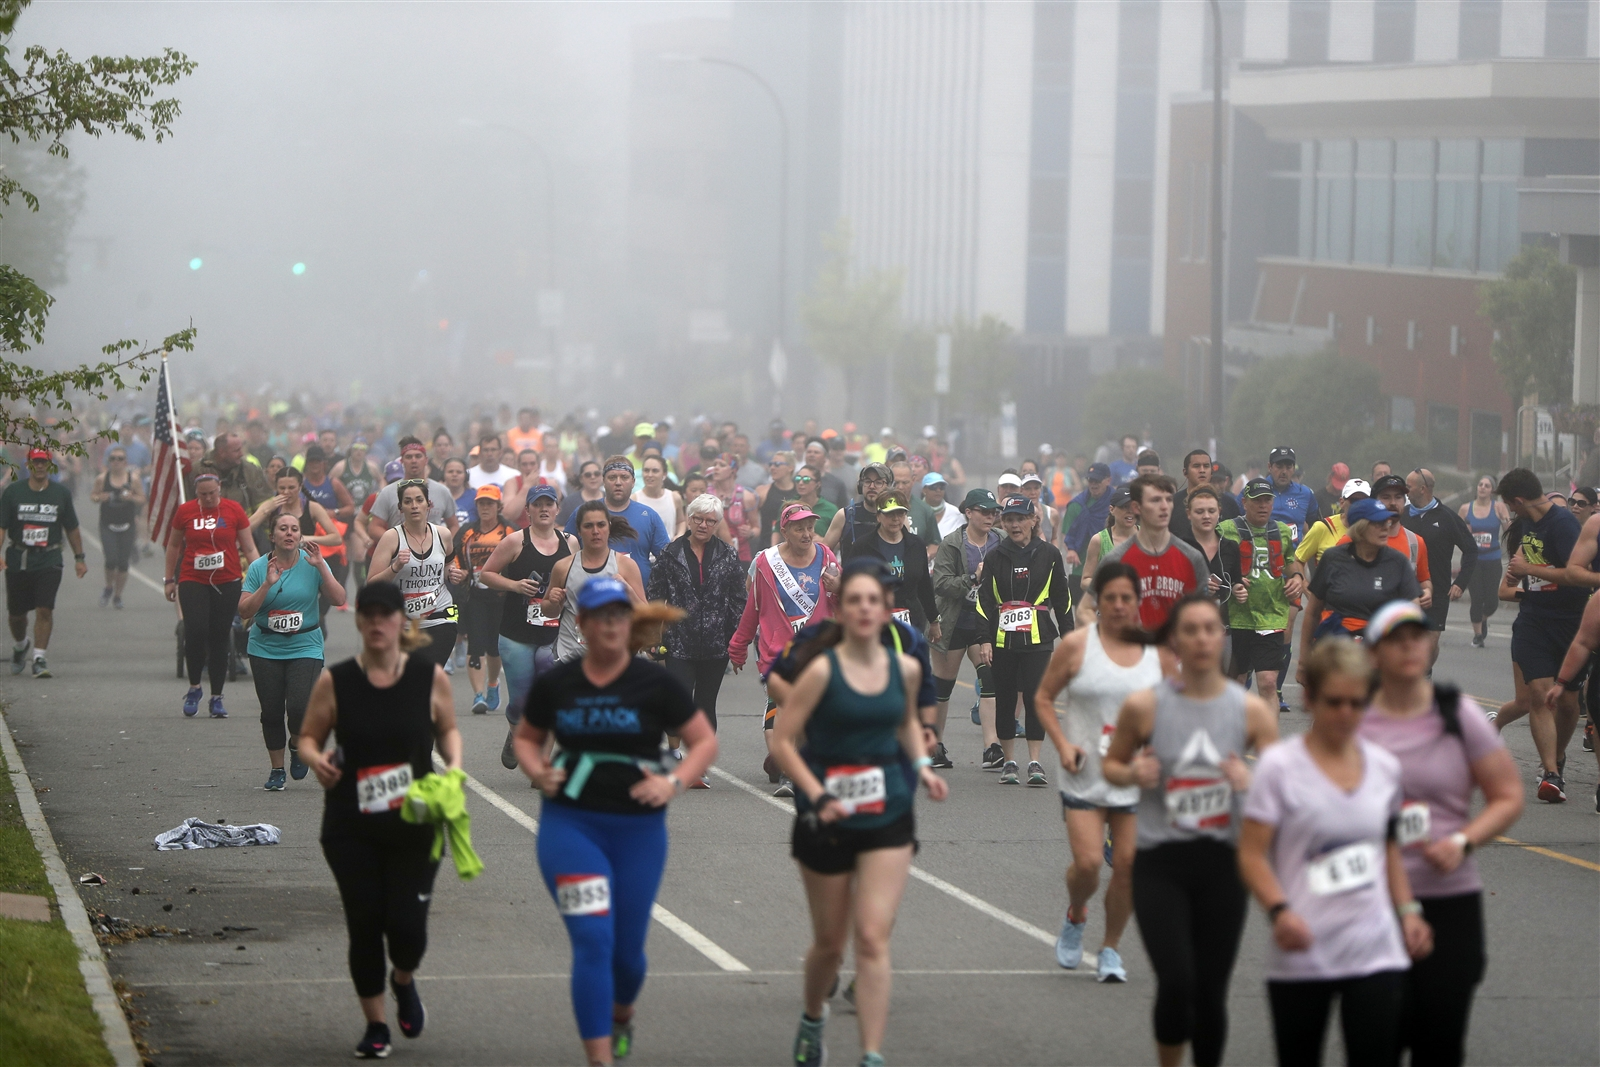 Runners headed through the streets of Buffalo during the 2019 Buffalo Marathon on Sunday, May 26.